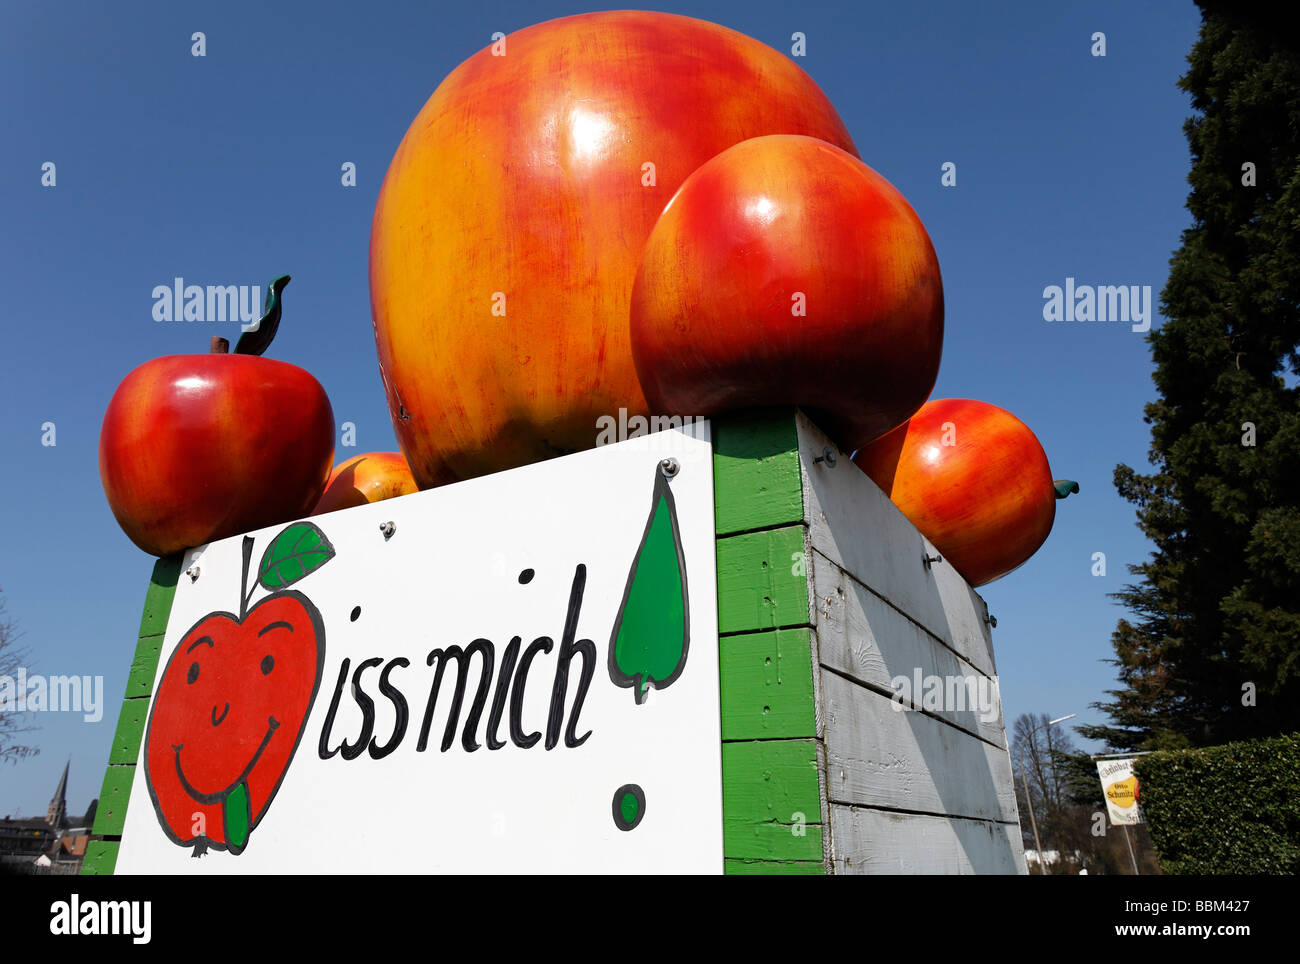 Fake apples on a cart, 'iss mich' in writing, signpost of an apple sale, North Rhine-Westphalia, Germany, - Stock Image